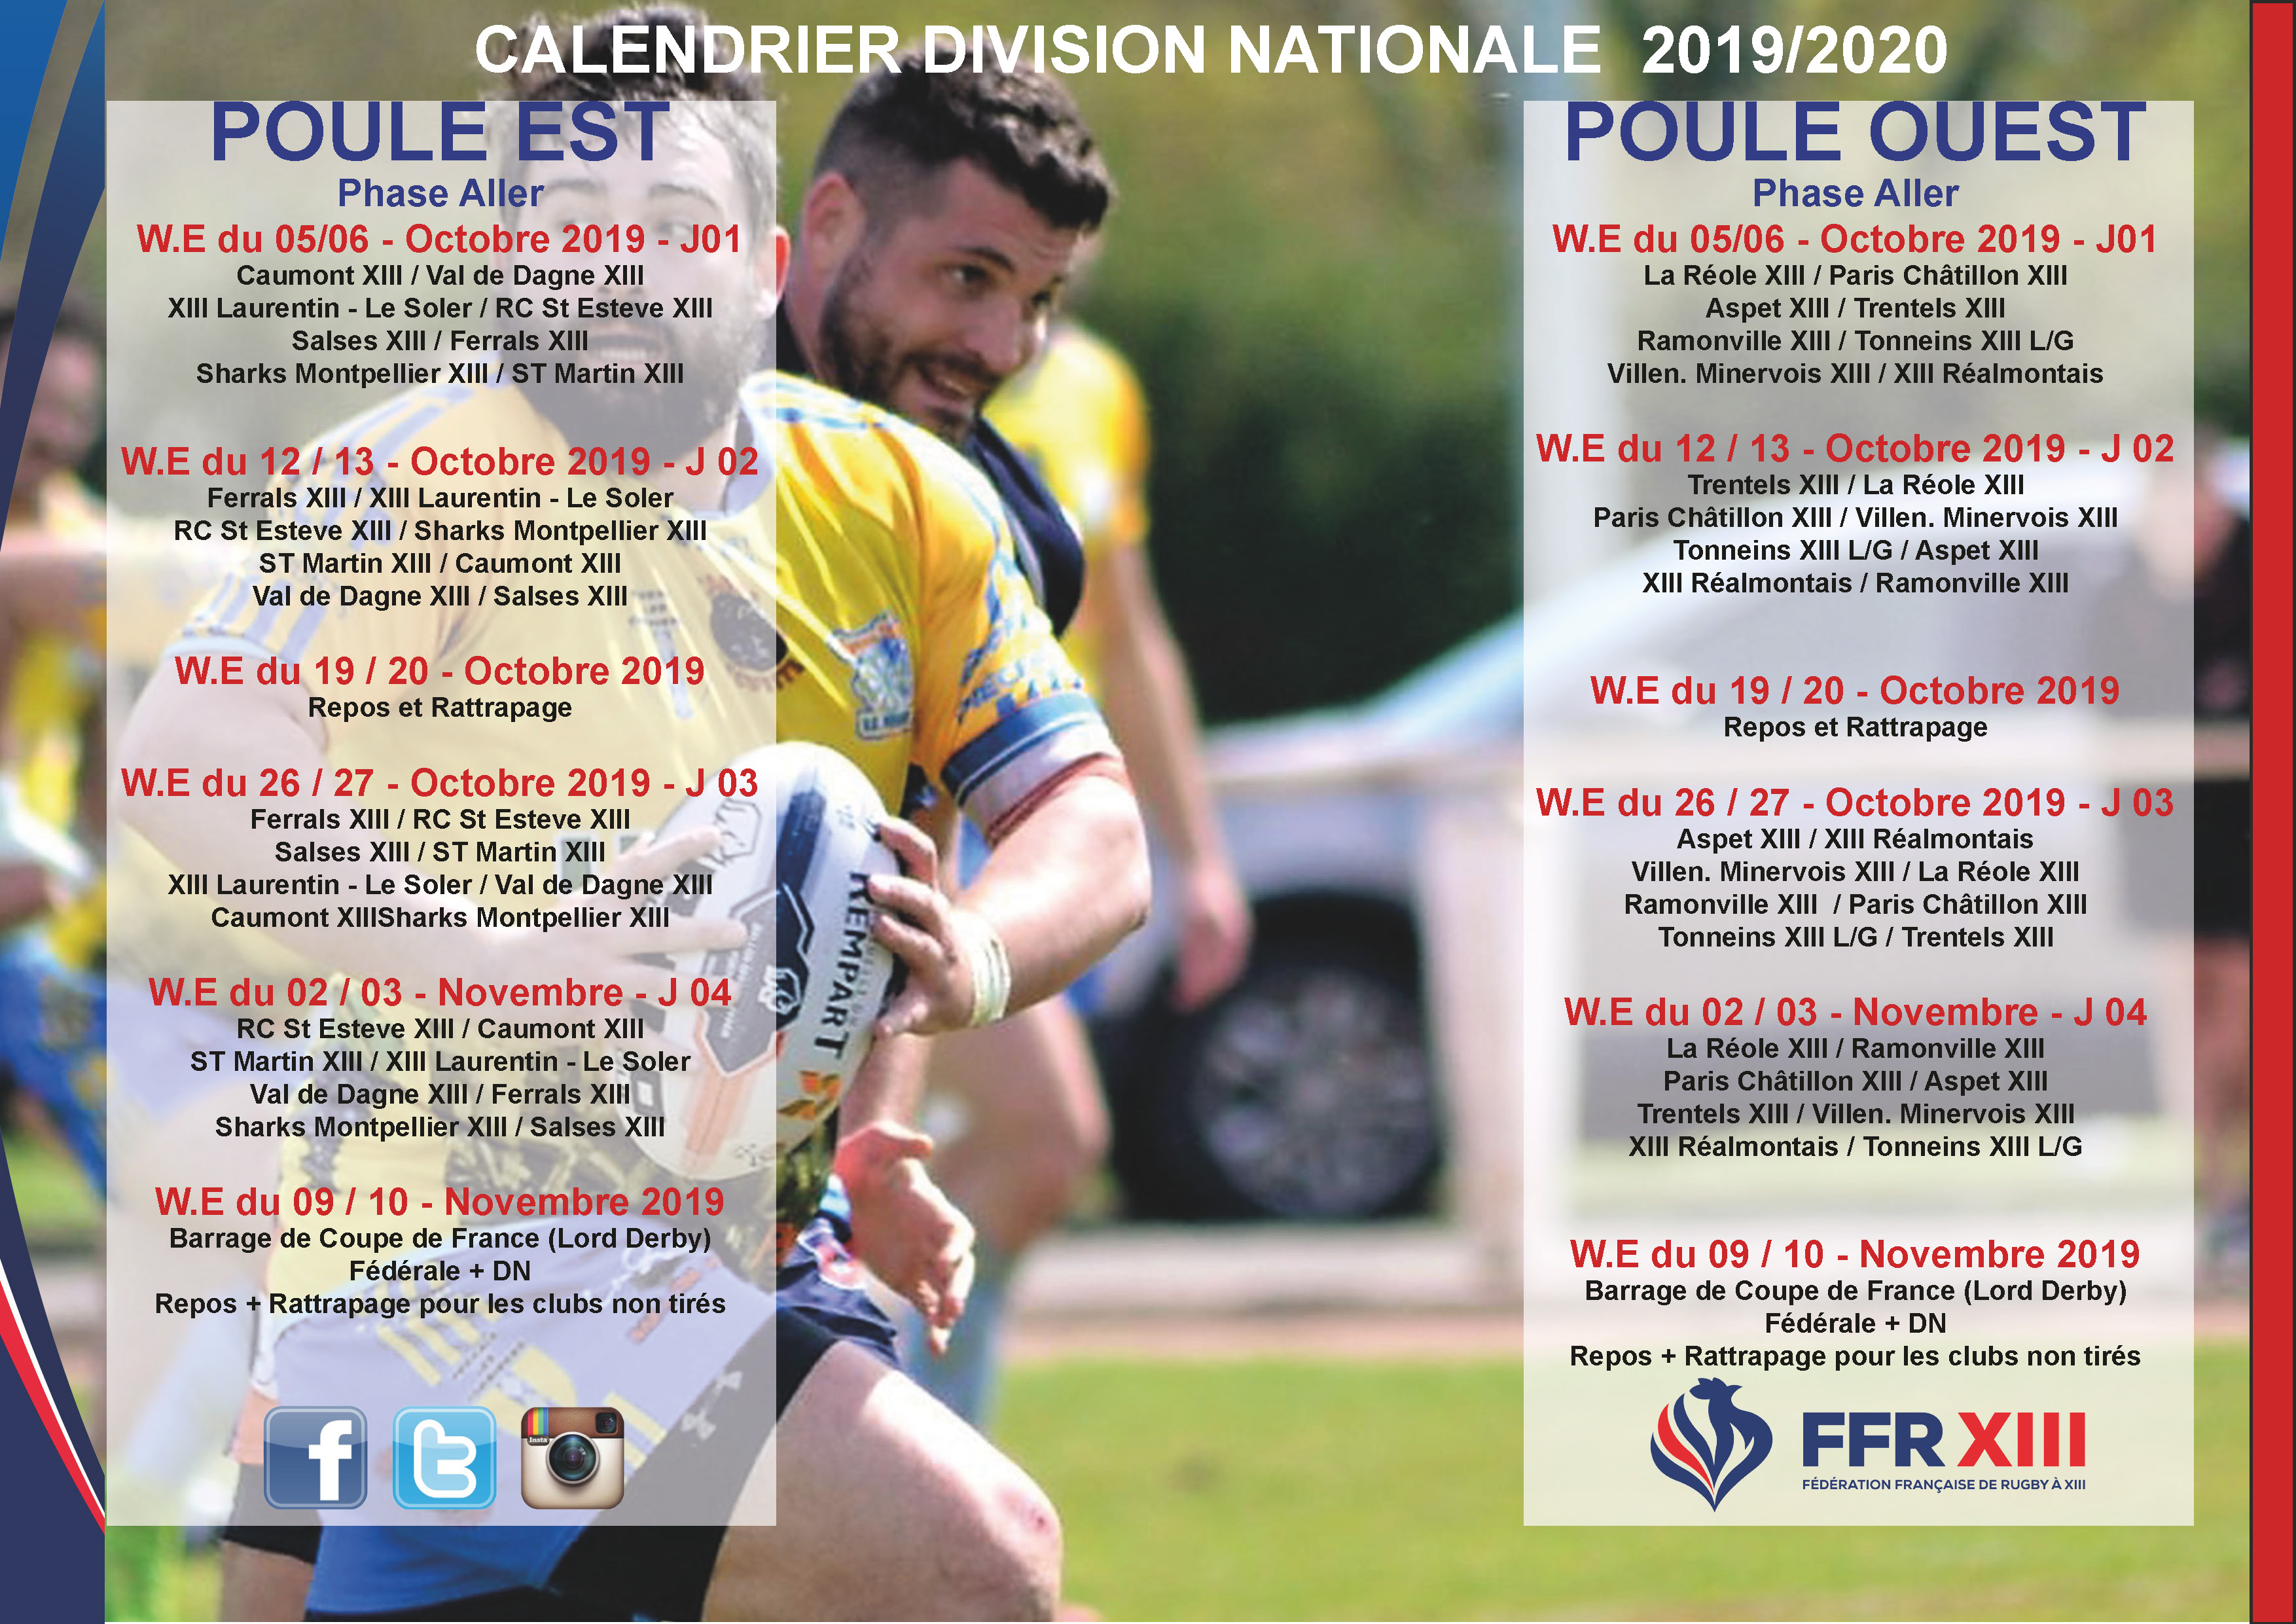 Calendrier 2020 Rugby.Le Calendrier Nationale 2019 2020 Est Disponible